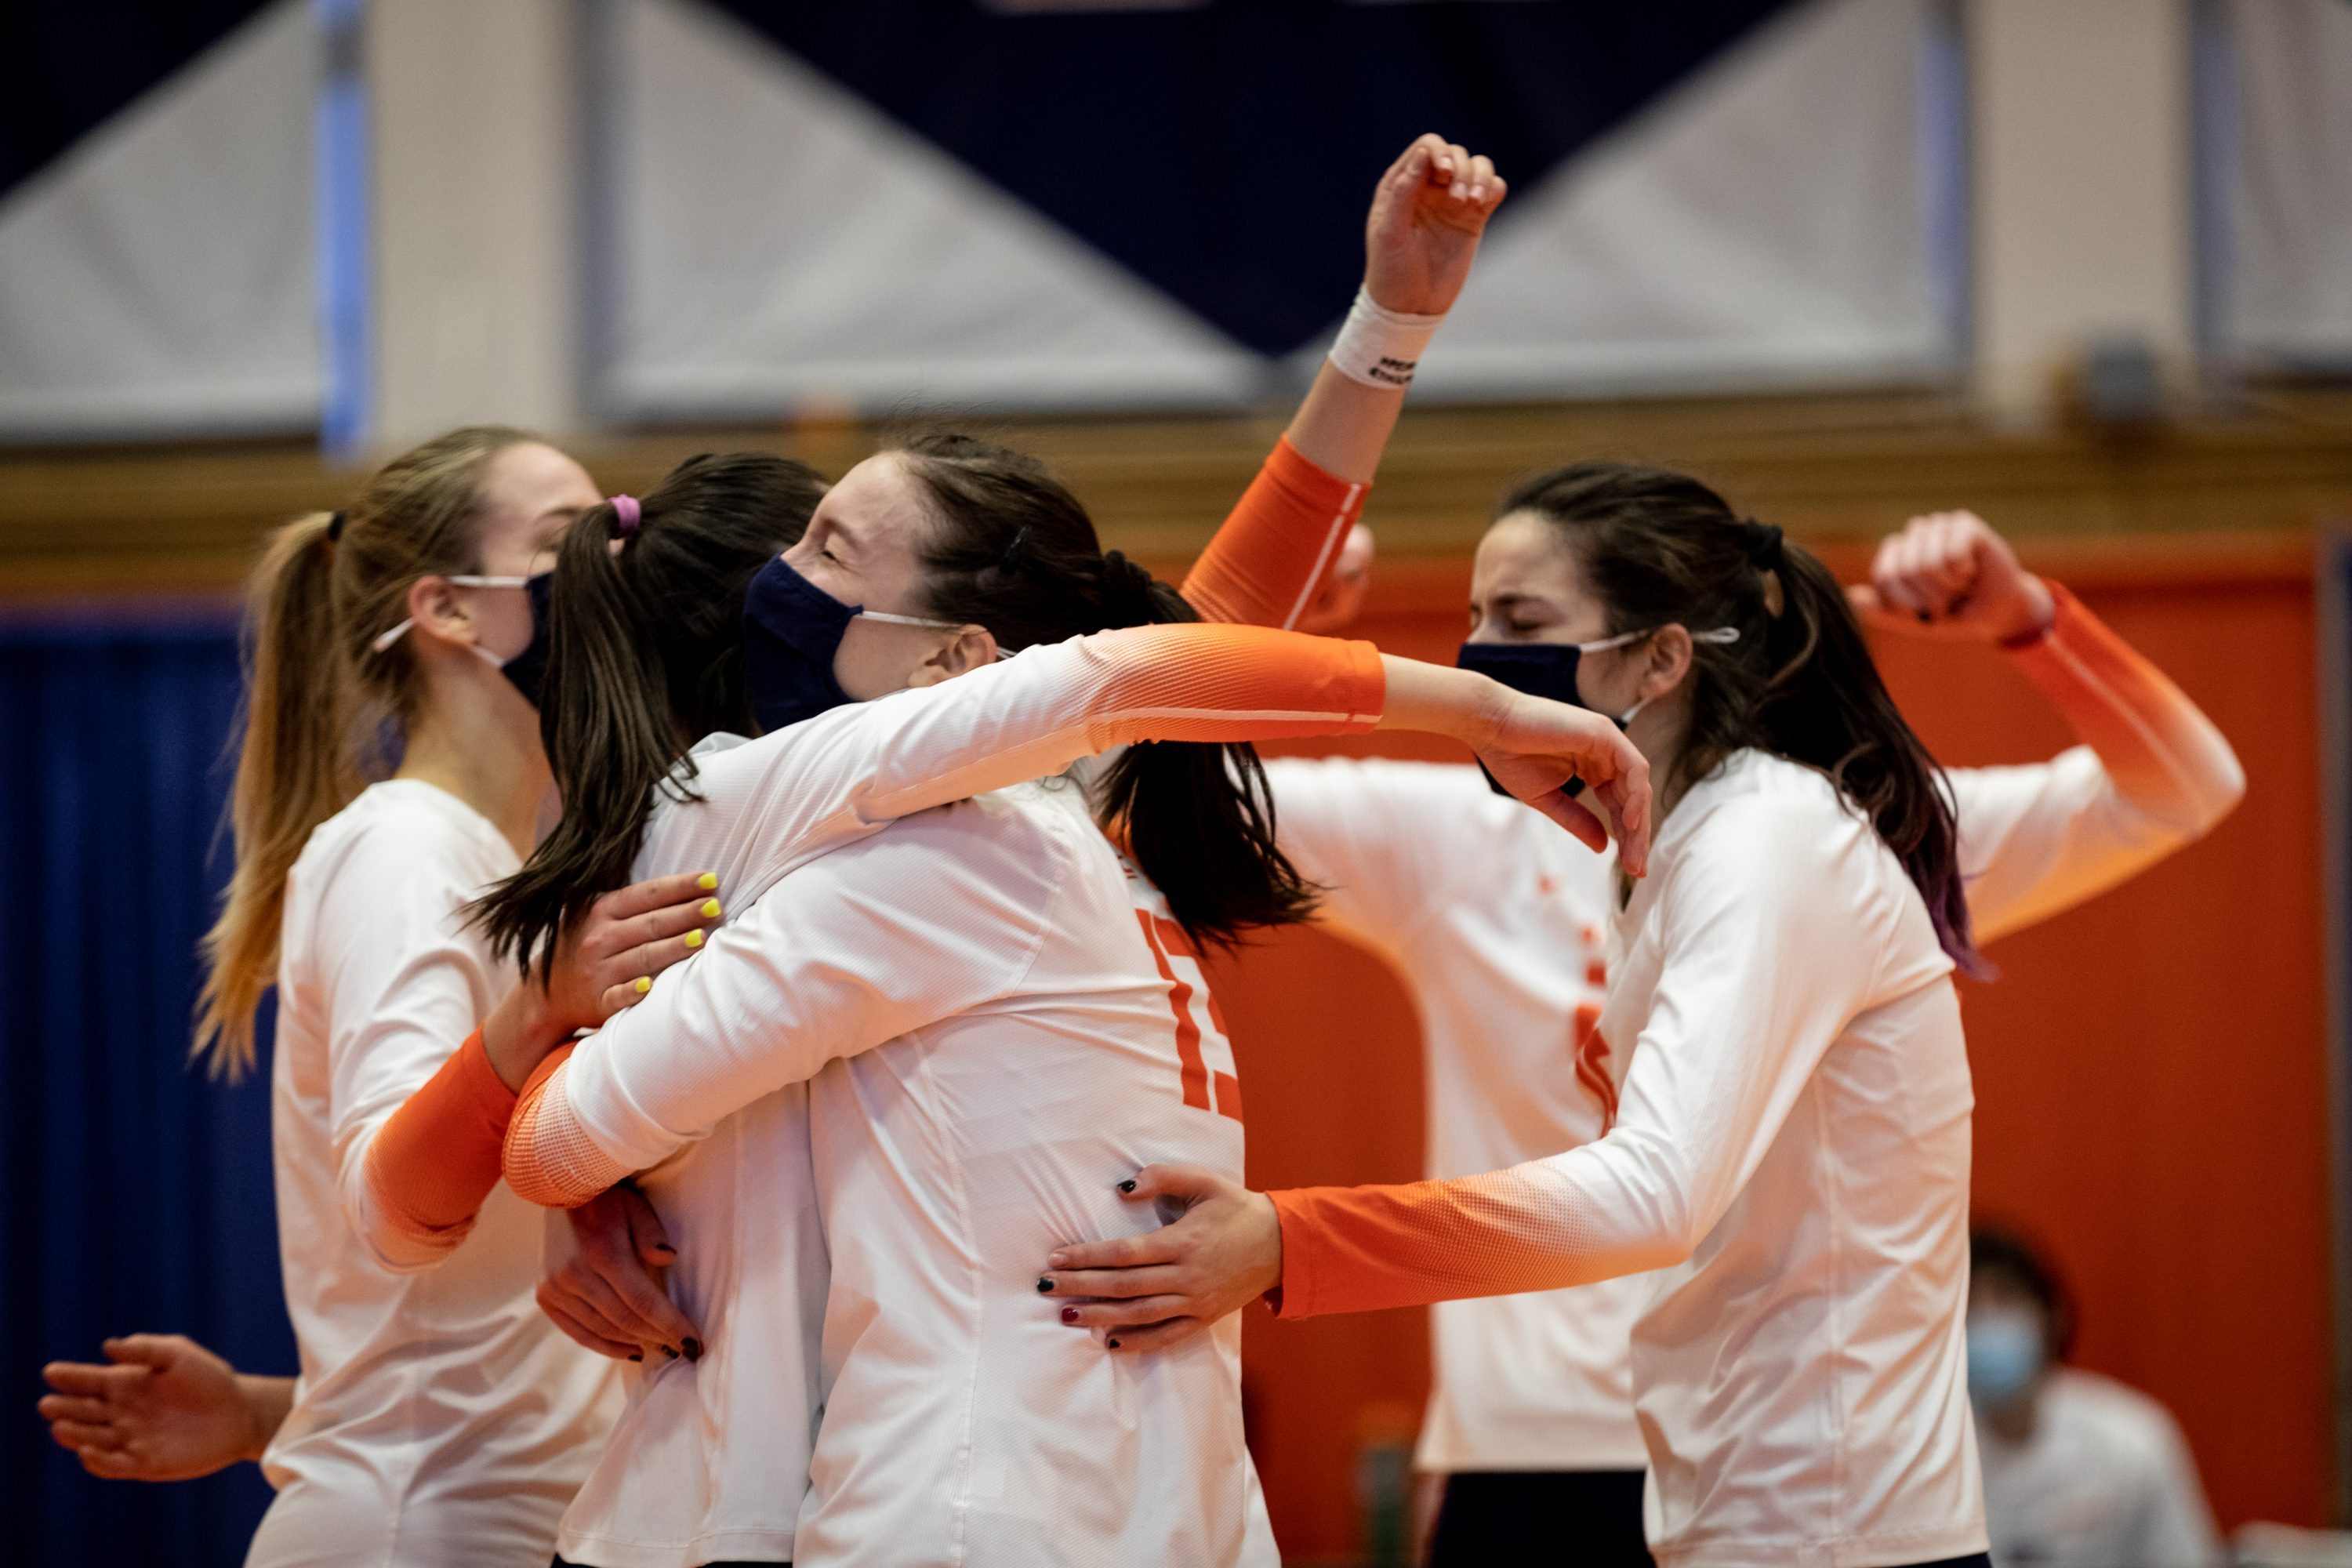 SU's Yuliia Yastrub (13) embraces her teammates during the March 5, 2021 game against UNC in the Women's Building in Syracuse, NY.